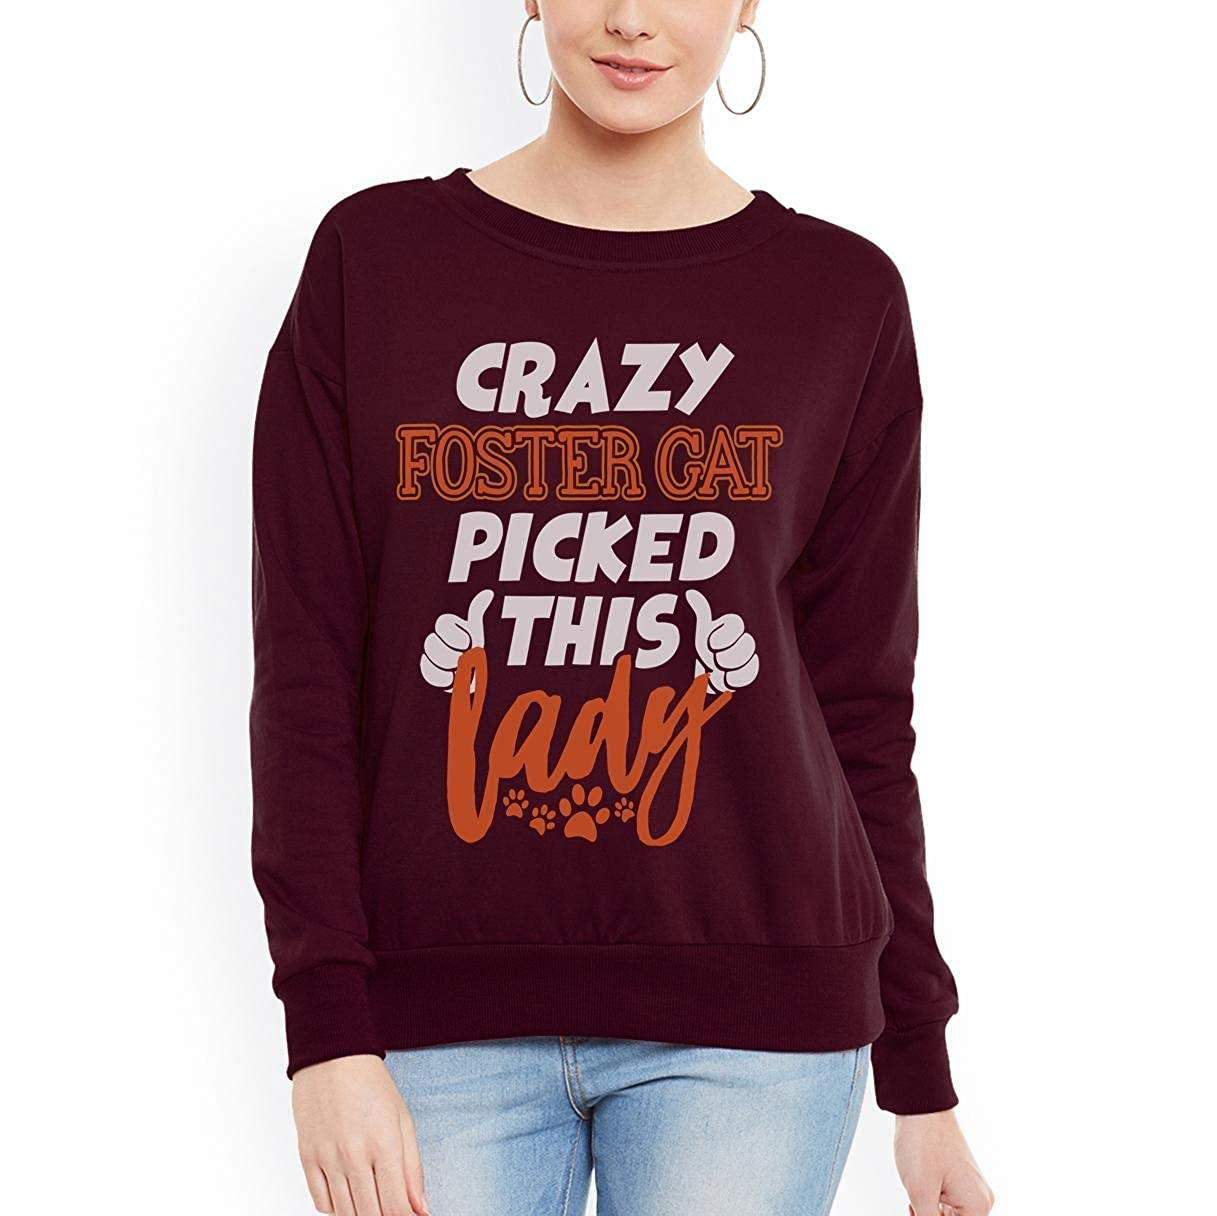 Crazy Foster Cat Picked This Lady Funny Women Sweatshirt tee